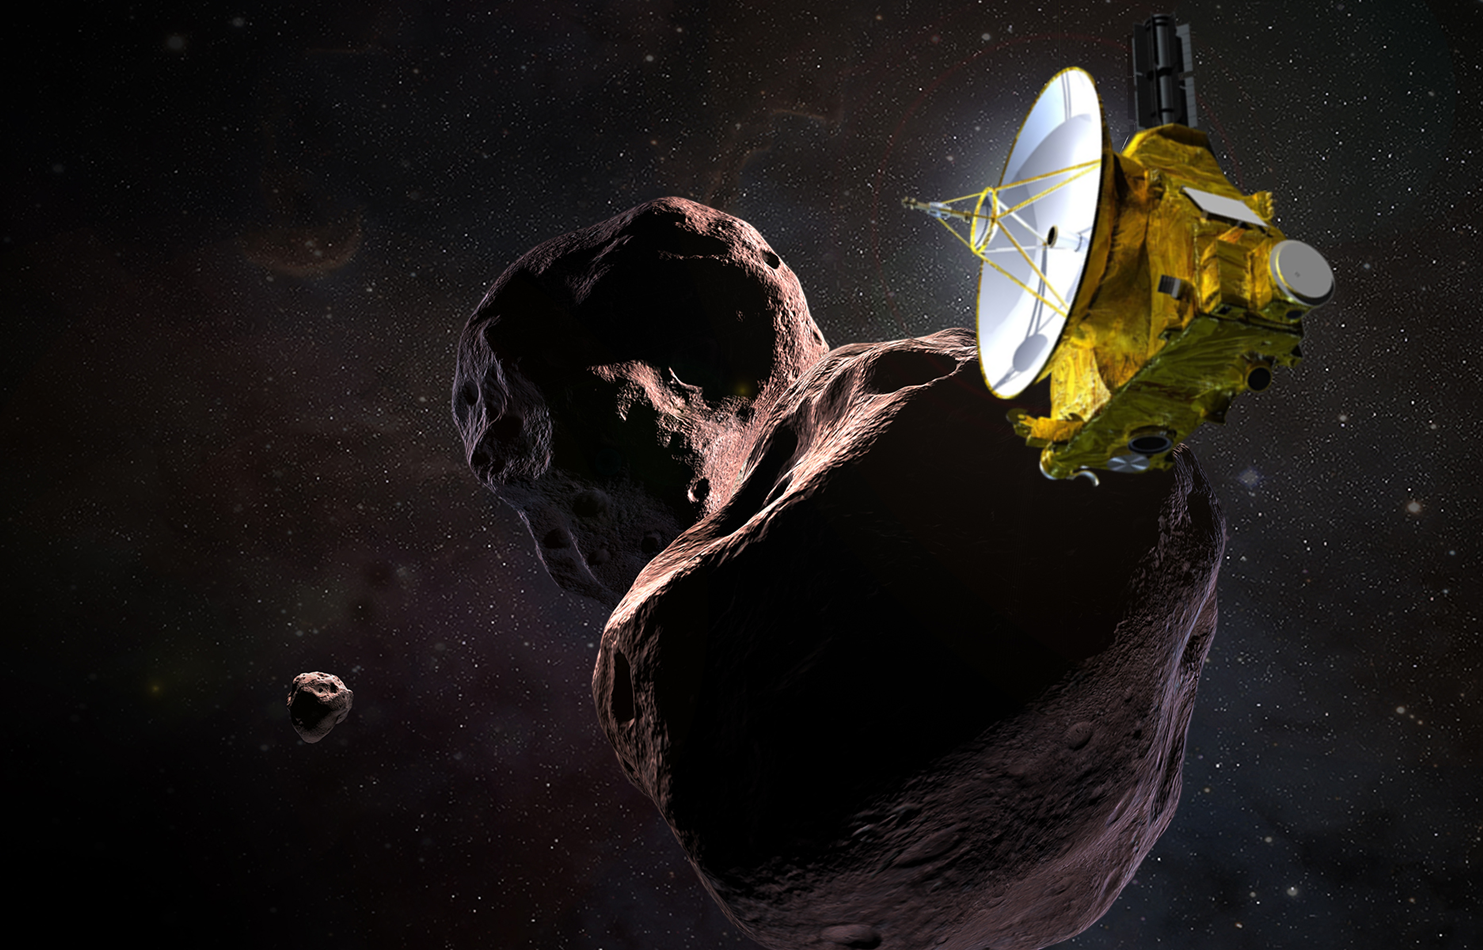 An artist's illustration of New Horizons flying by the Kuiper Belt Object Ultima Thule. Image Credit NASA / JPL / JHUAPL